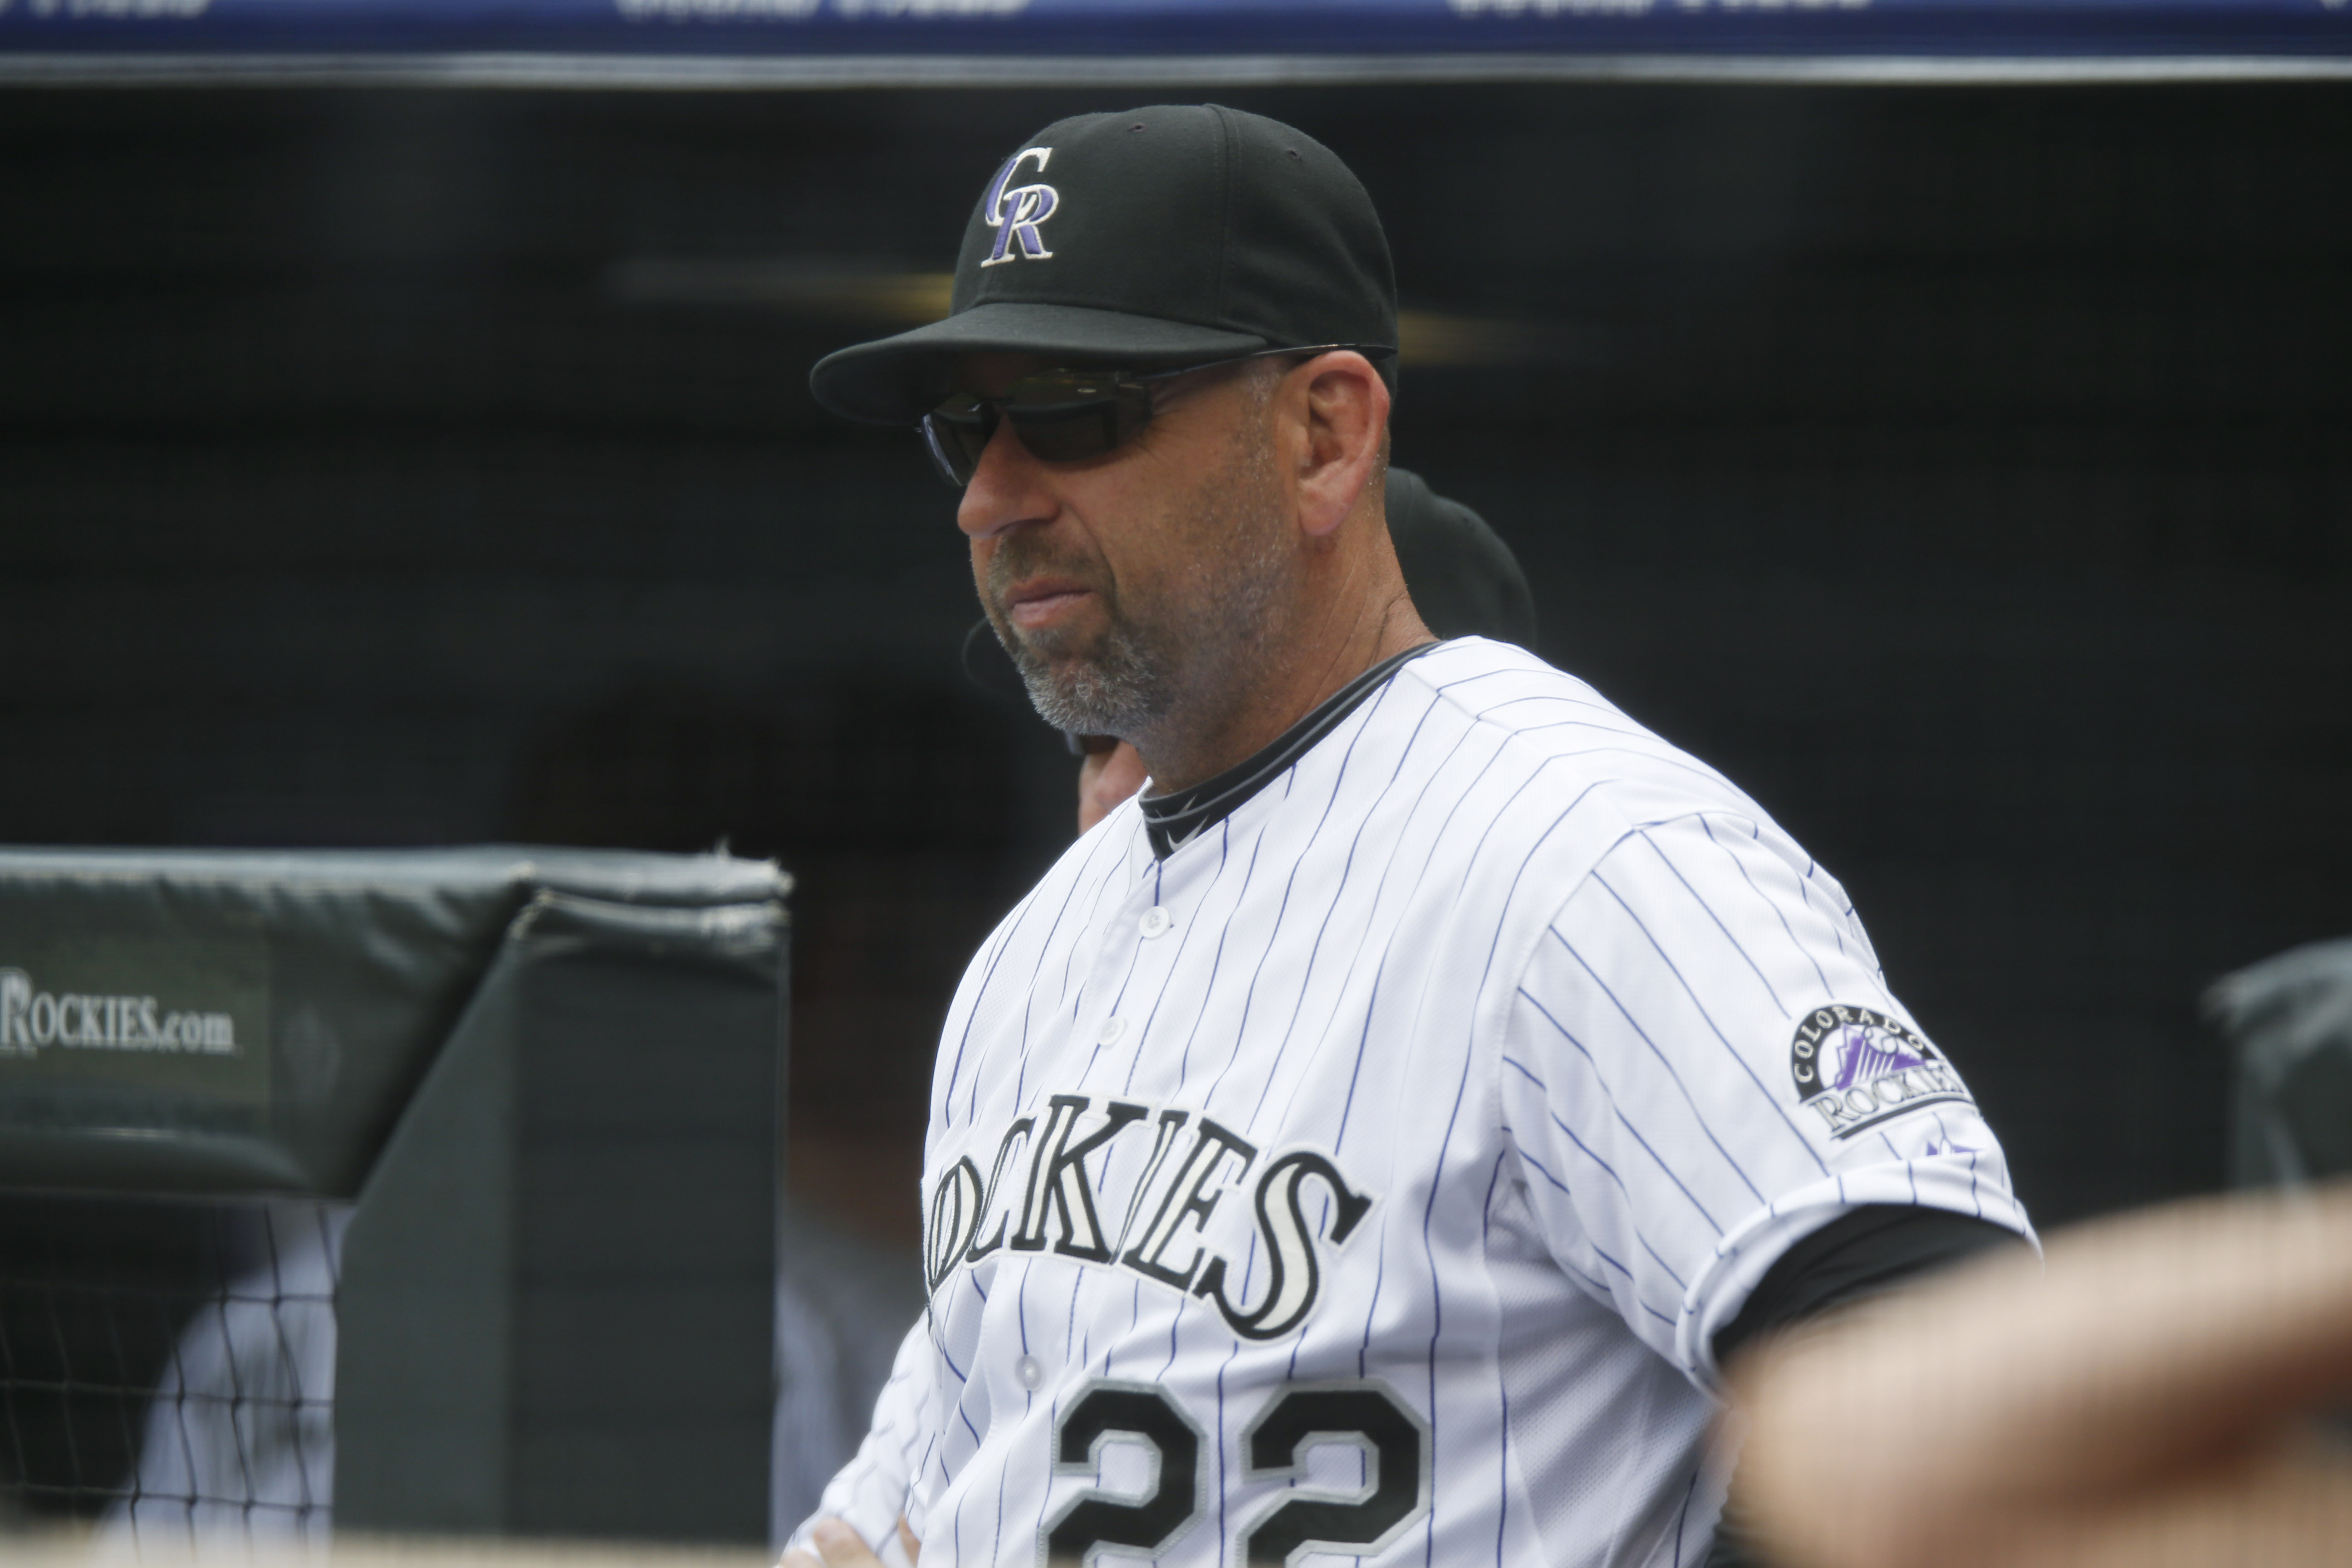 Colorado Rockies manager Walt Weiss (22) looks on against the San Diego Padres in the first inning of a baseball game Thursday, April 23, 2015, in Denver. (AP Photo/David Zalubowski)